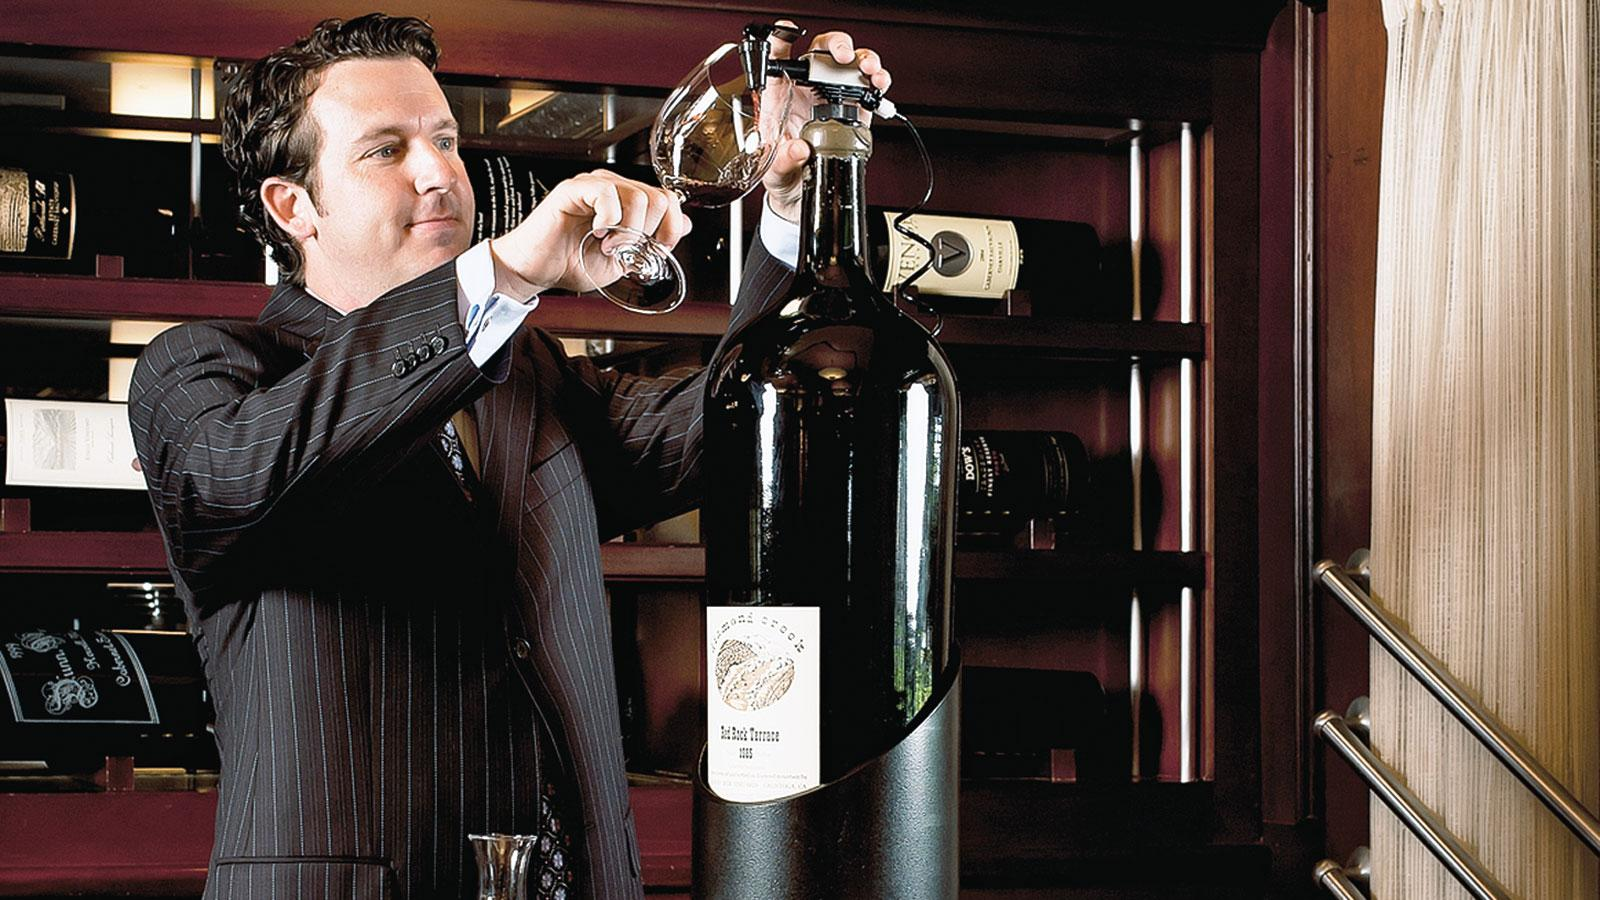 10 Restaurants Big on Large-Format Bottles